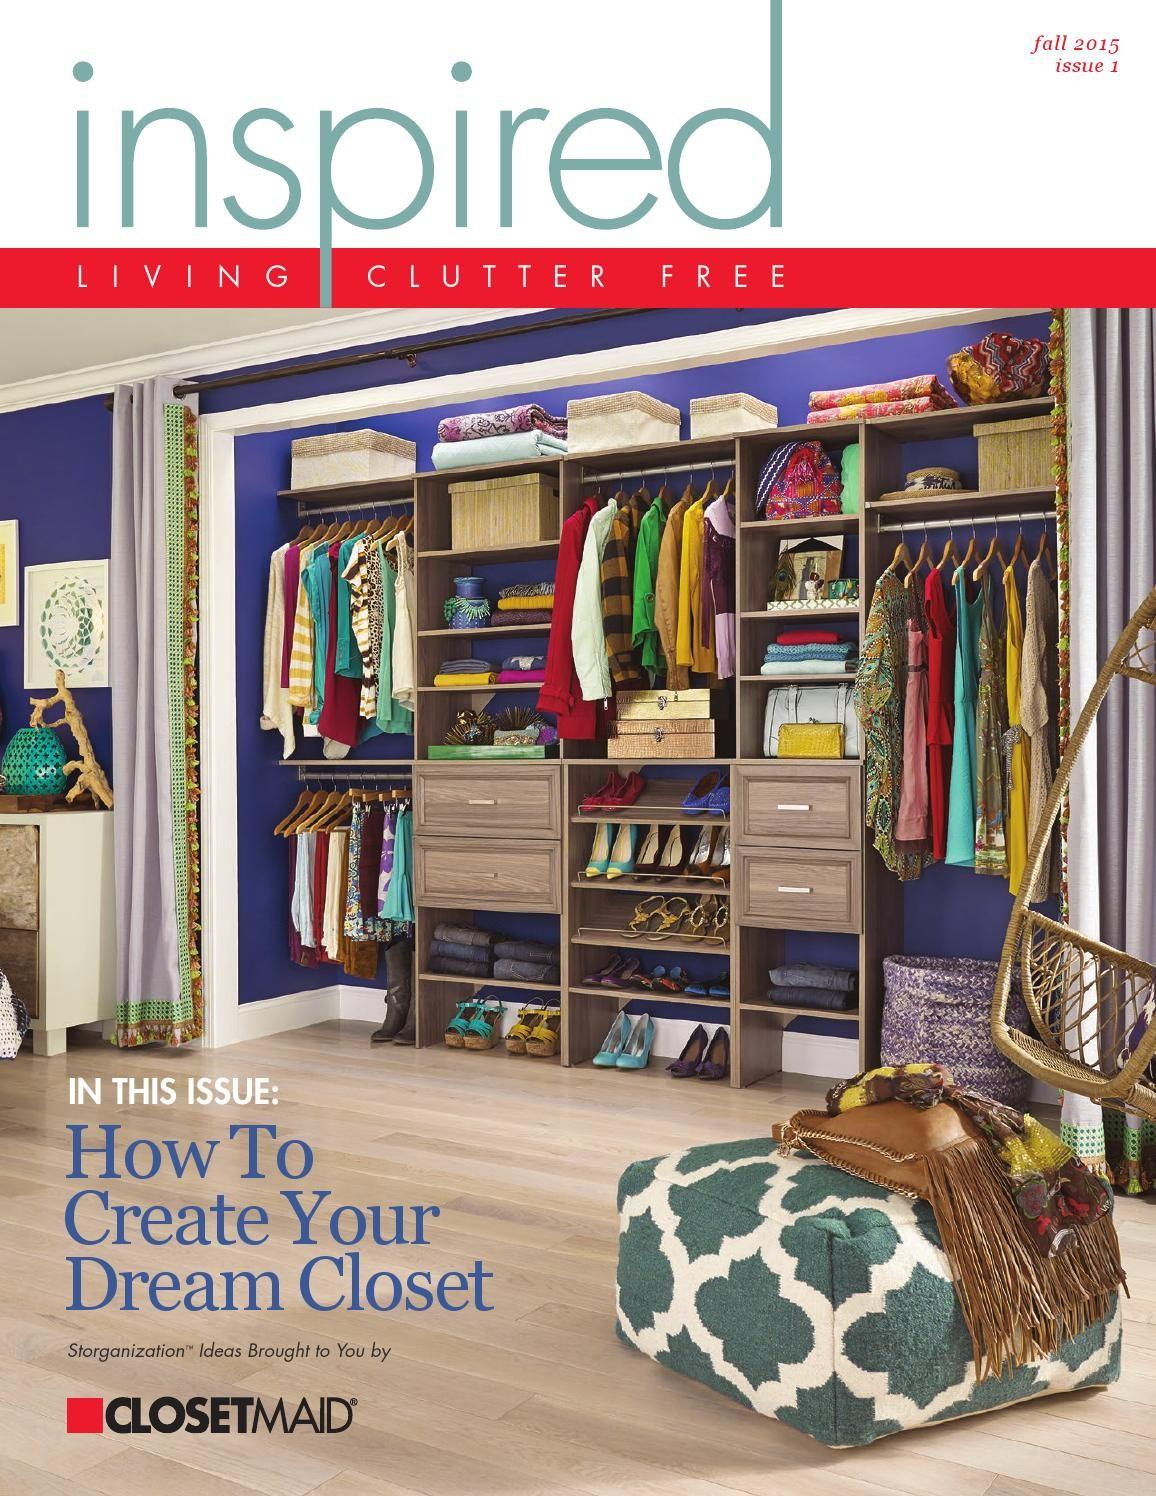 Inspired Living Clutter Fall 2015 Issue